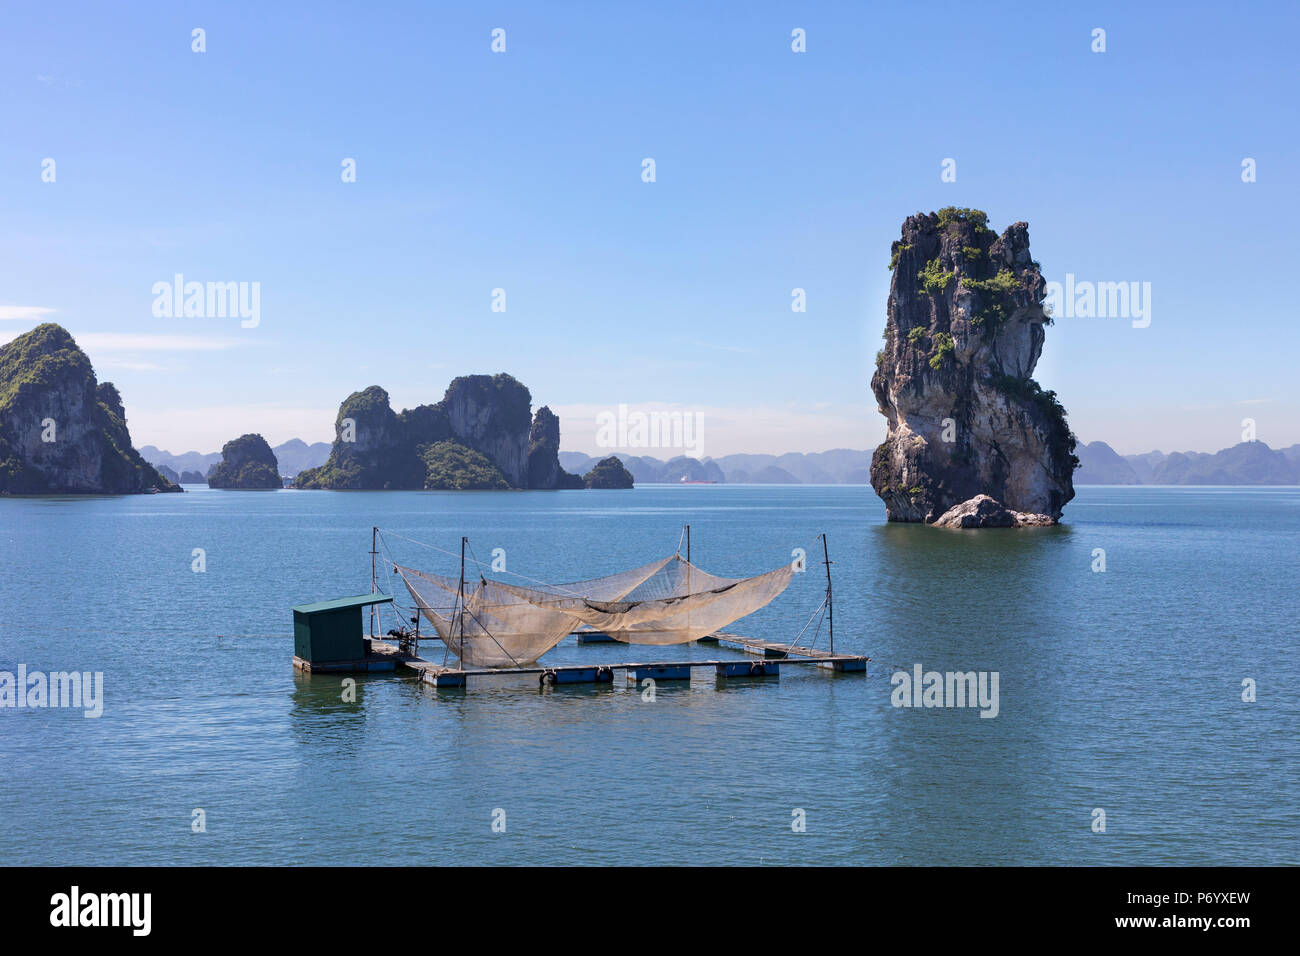 Fishing nets on a raft in front of karst rocks, Halong Bay, Quang Ninh Province, North-East Vietnam, South-East Asia Stock Photo